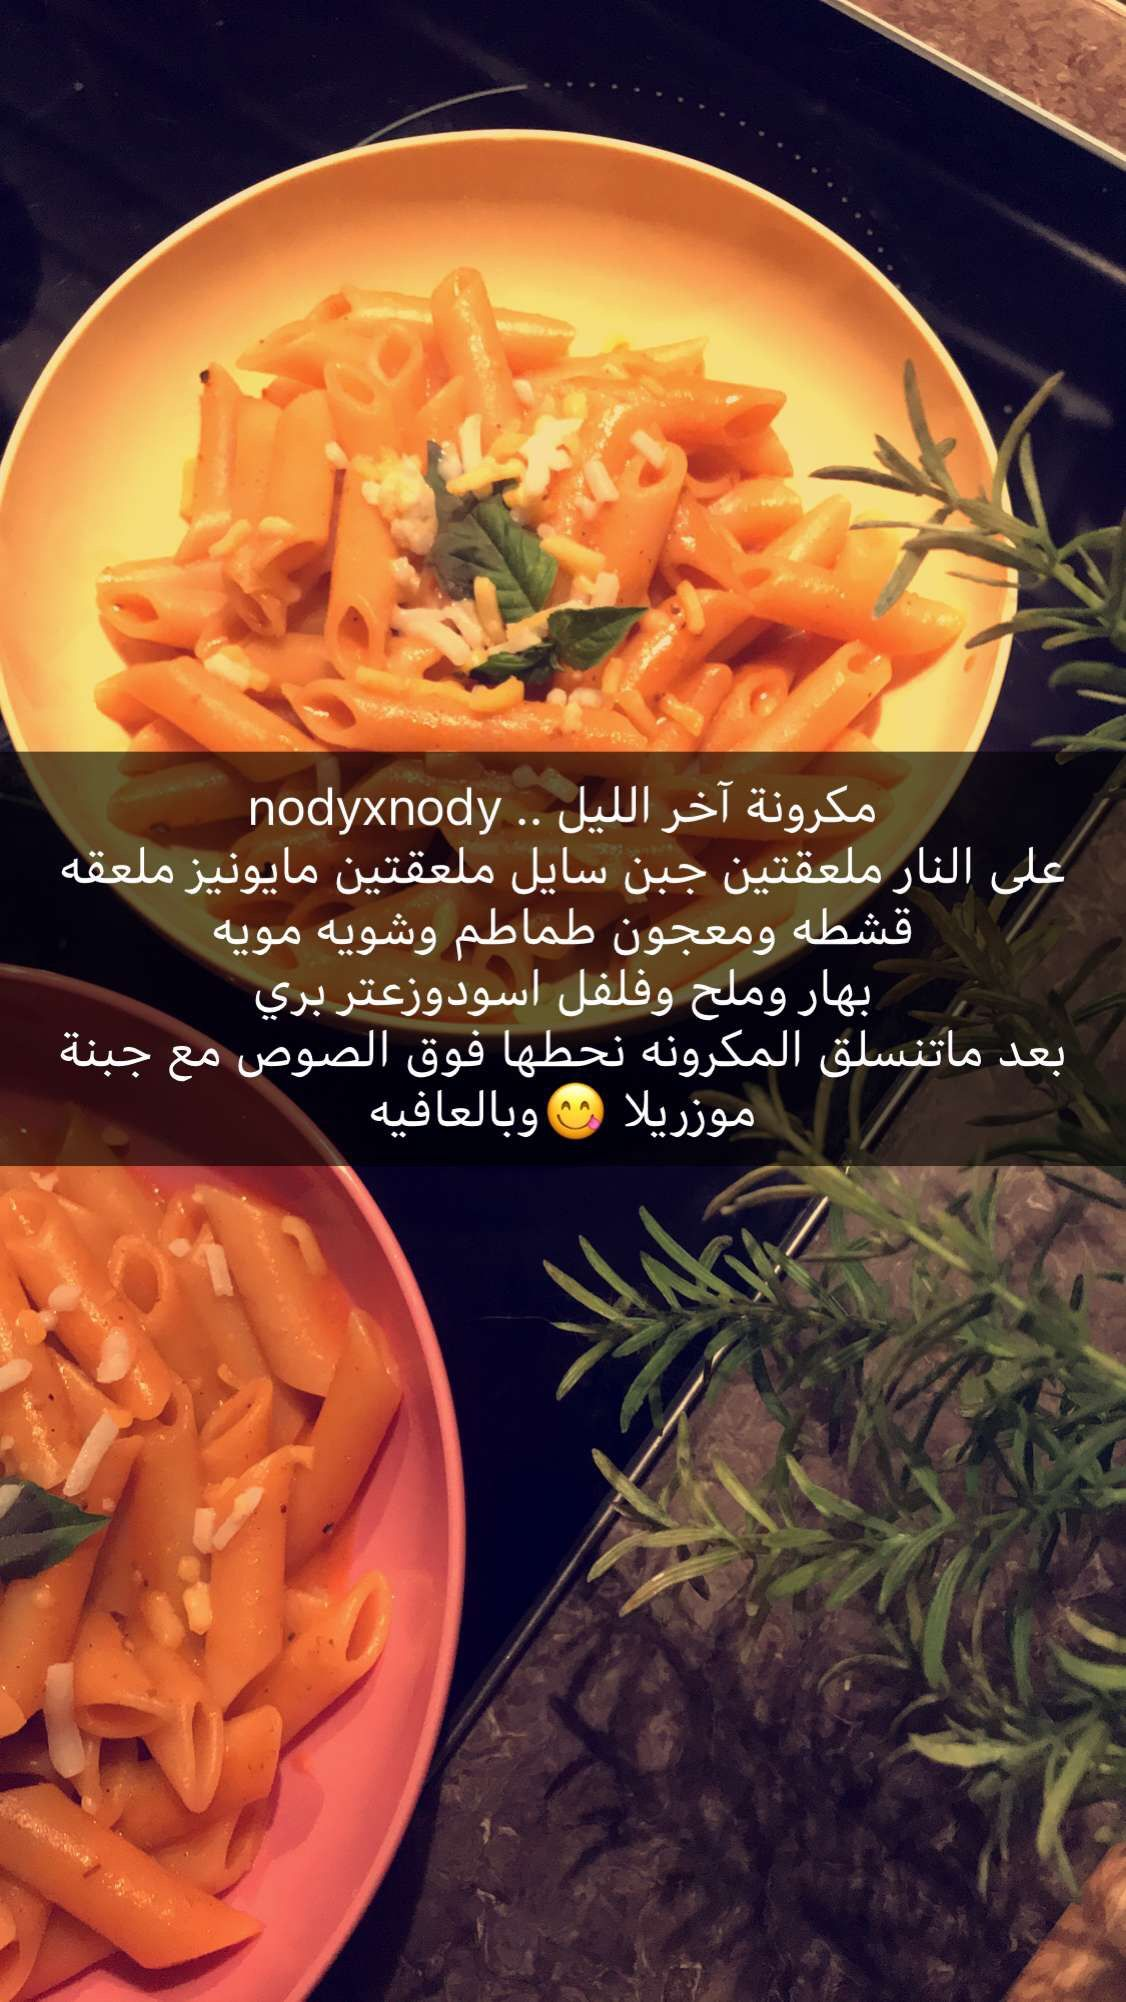 Pin By Gogo Youssef On سناب نوديتا Cooking Recipes Arabic Food Cooking